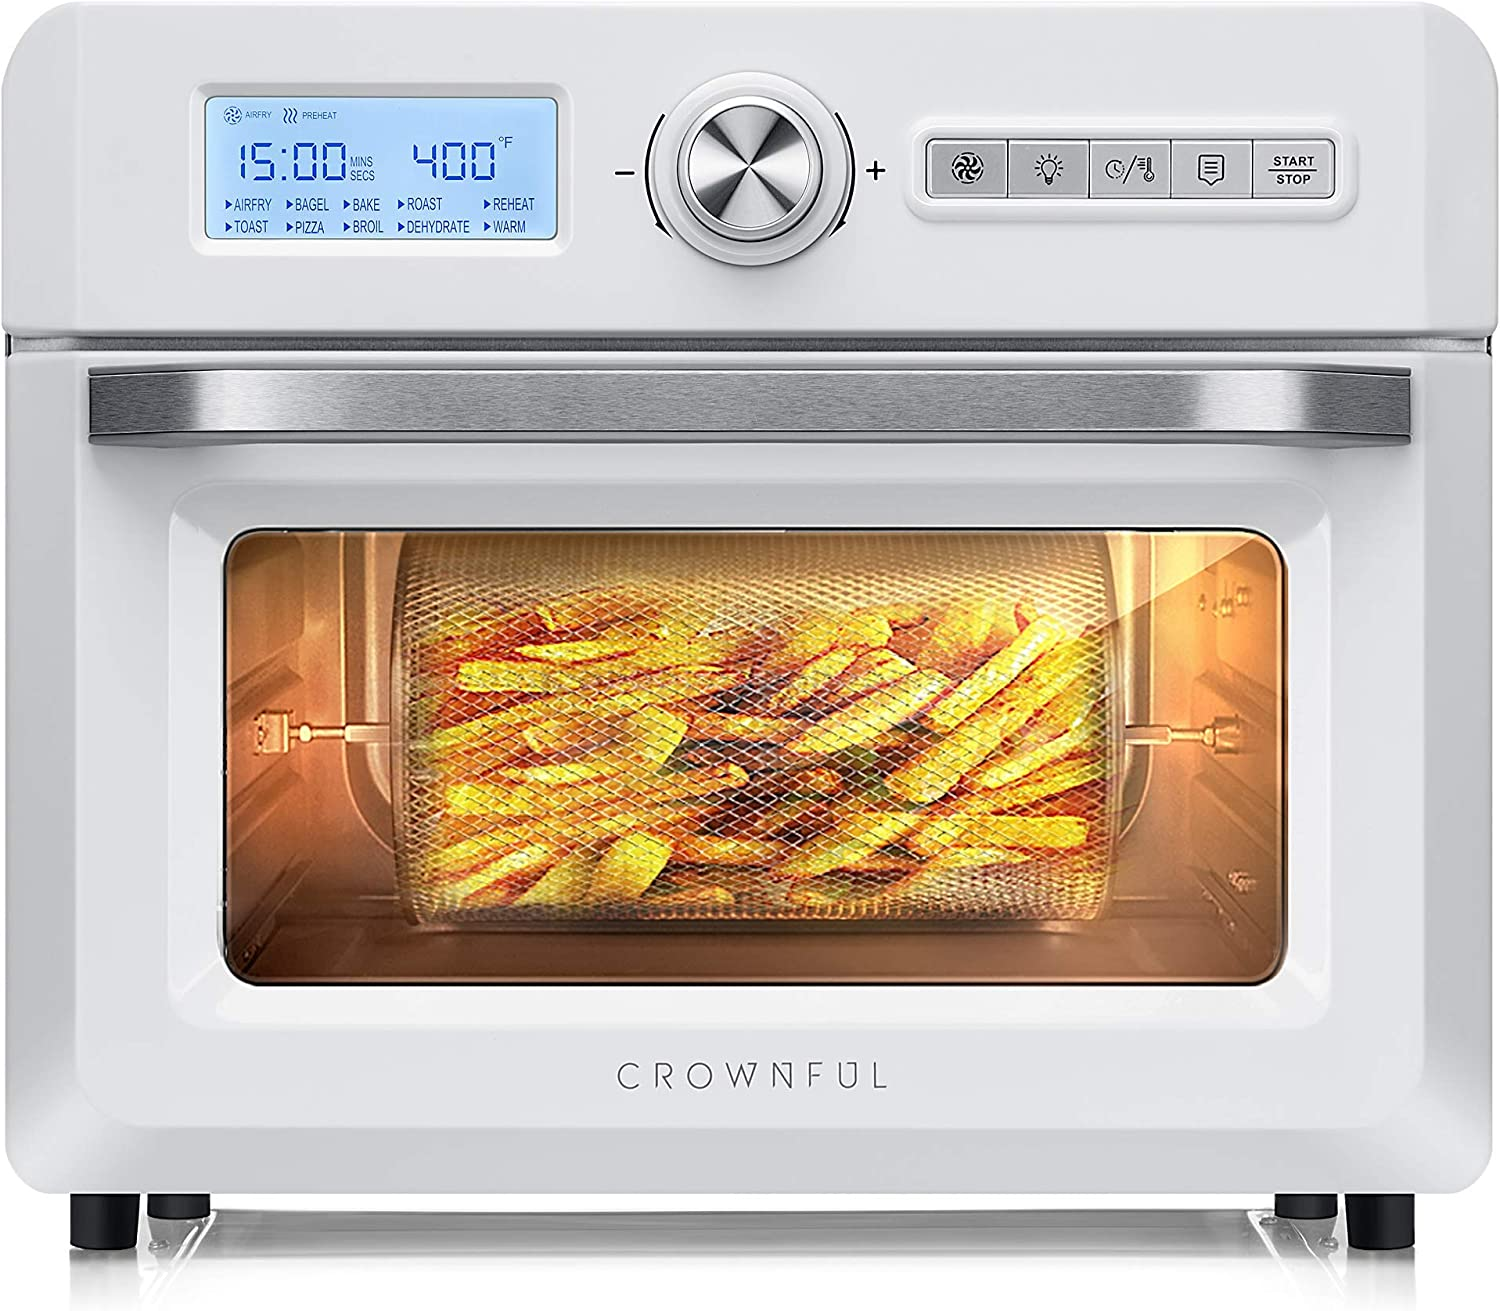 CROWNFUL 19 Quart Air Fryer Toaster Oven, Convection Roaster with Rotisserie & Dehydrator, 10-in-1 Countertop Oven, Original Recipe and 8 Accessories Included, UL Listed (White) (Renewed)